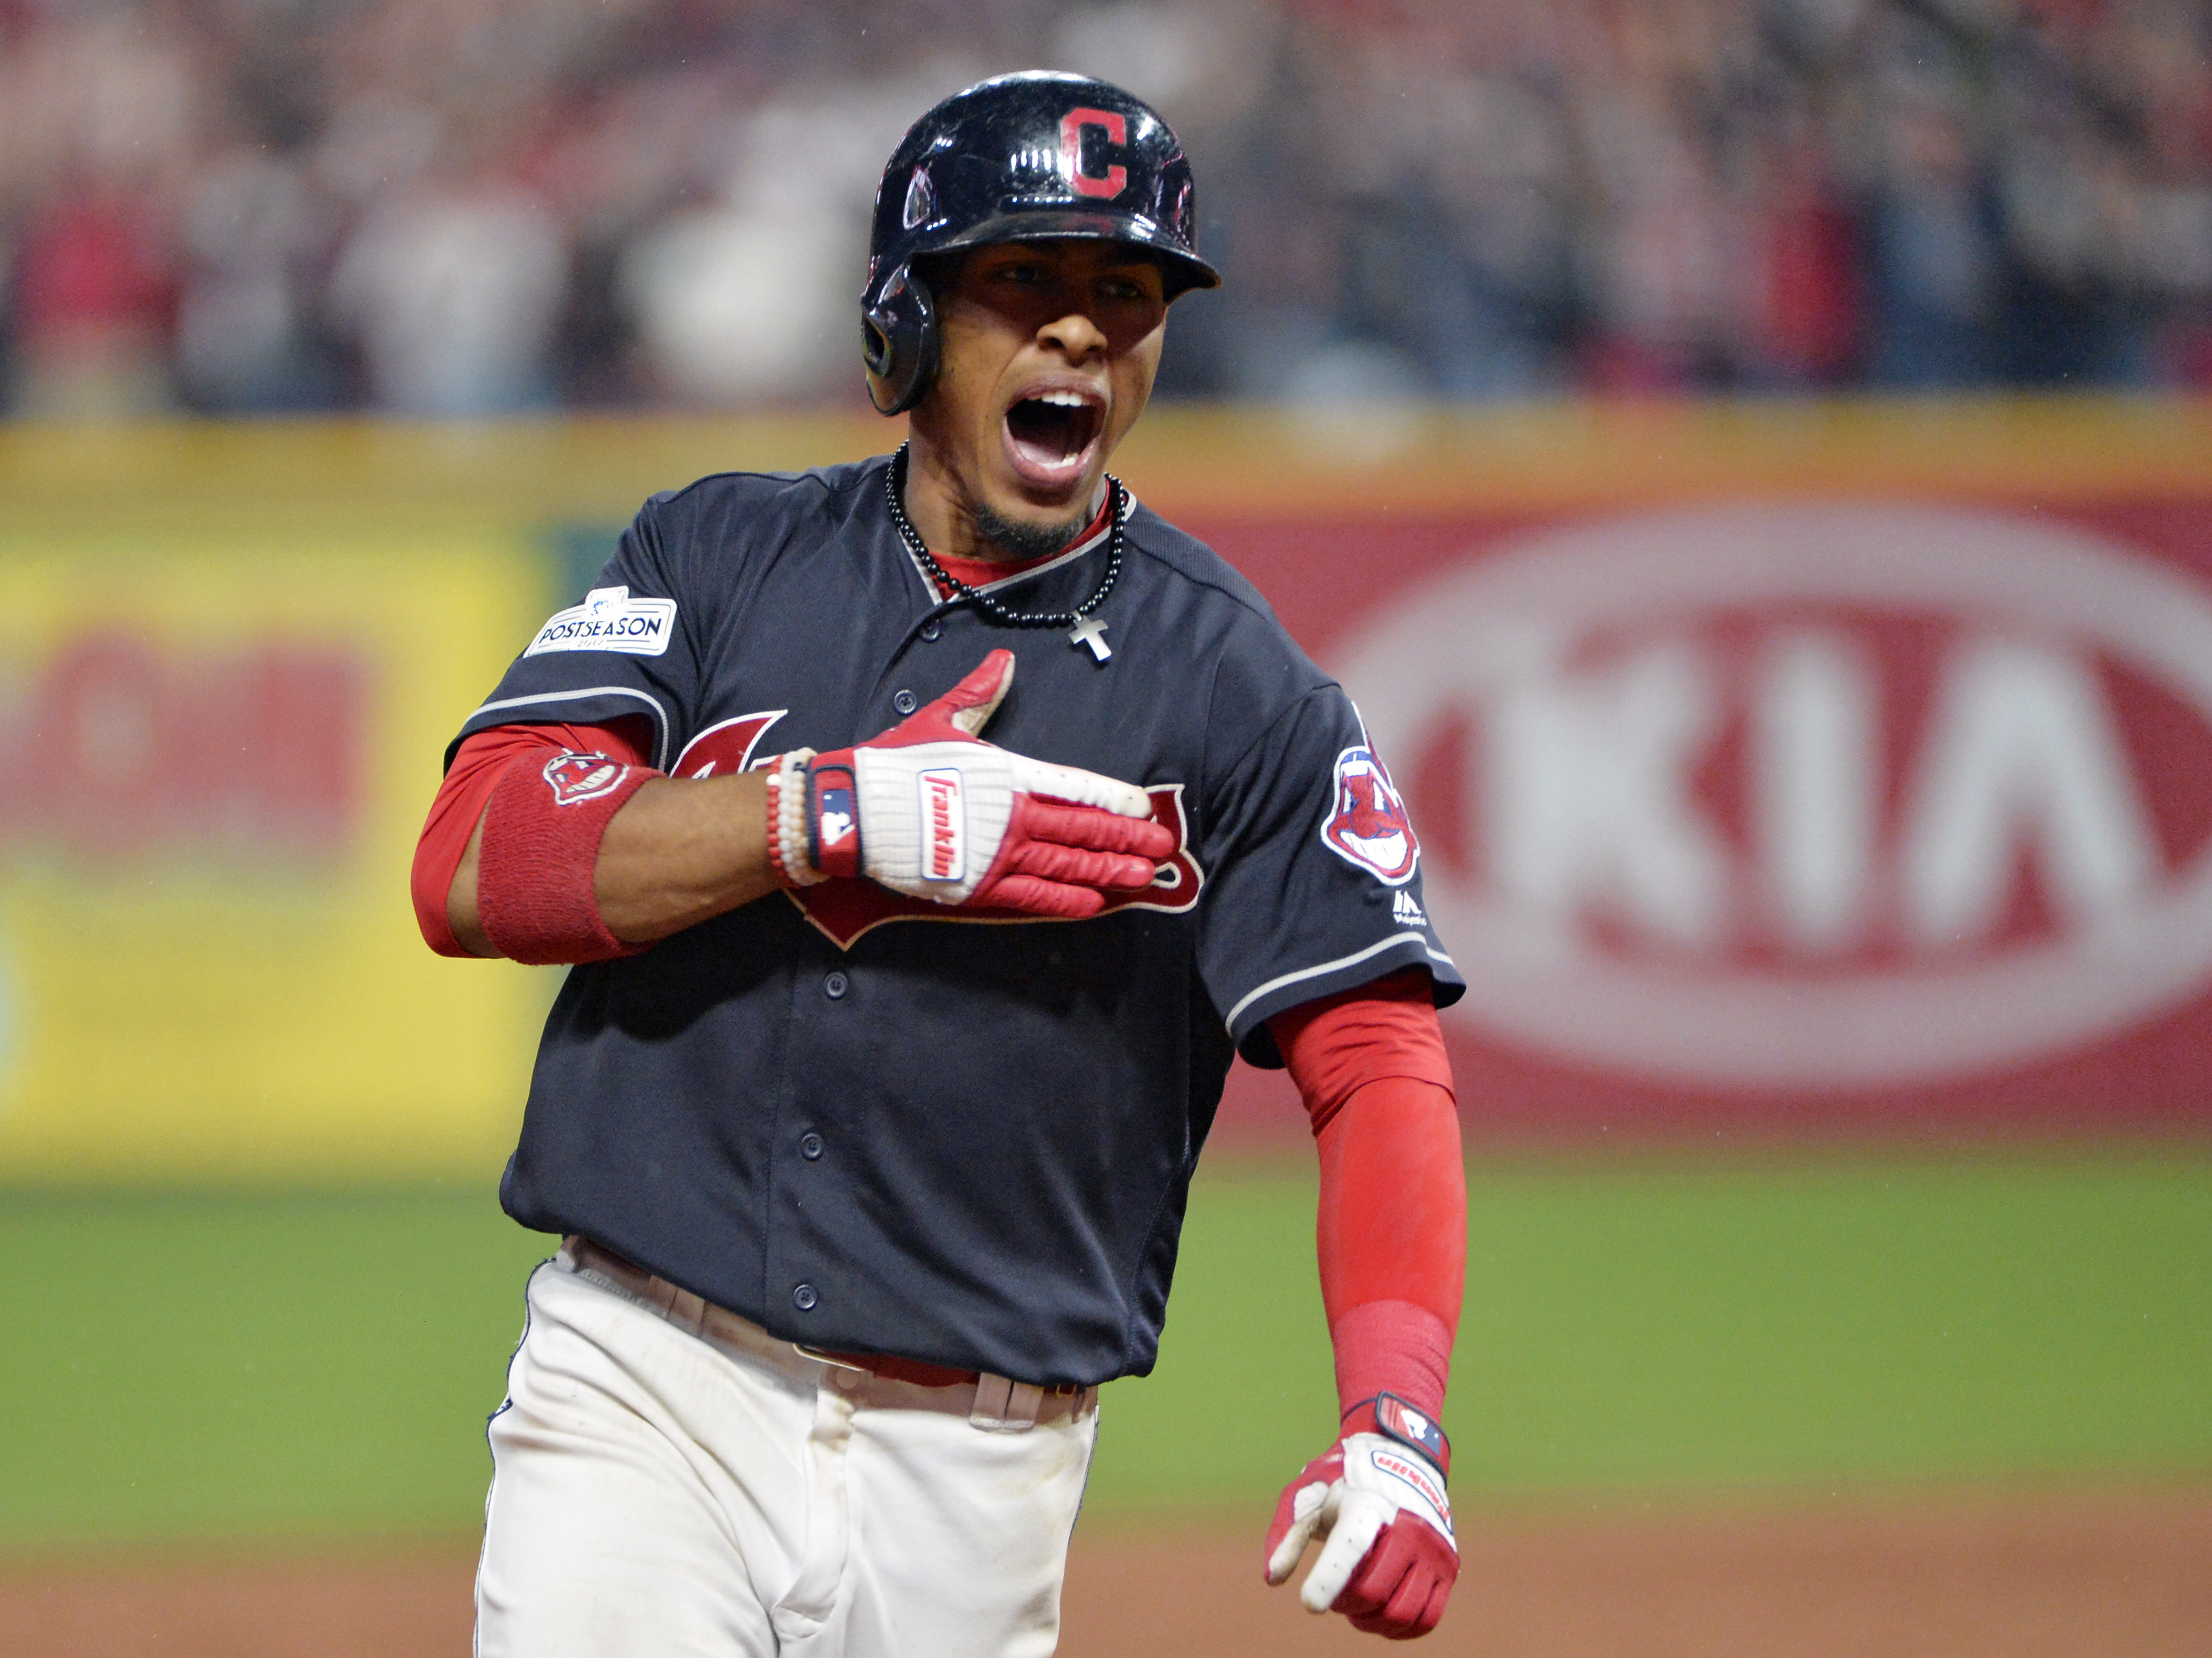 ALDS Game 2: Indians put Yankees on brink of elimination with dramatic comeback